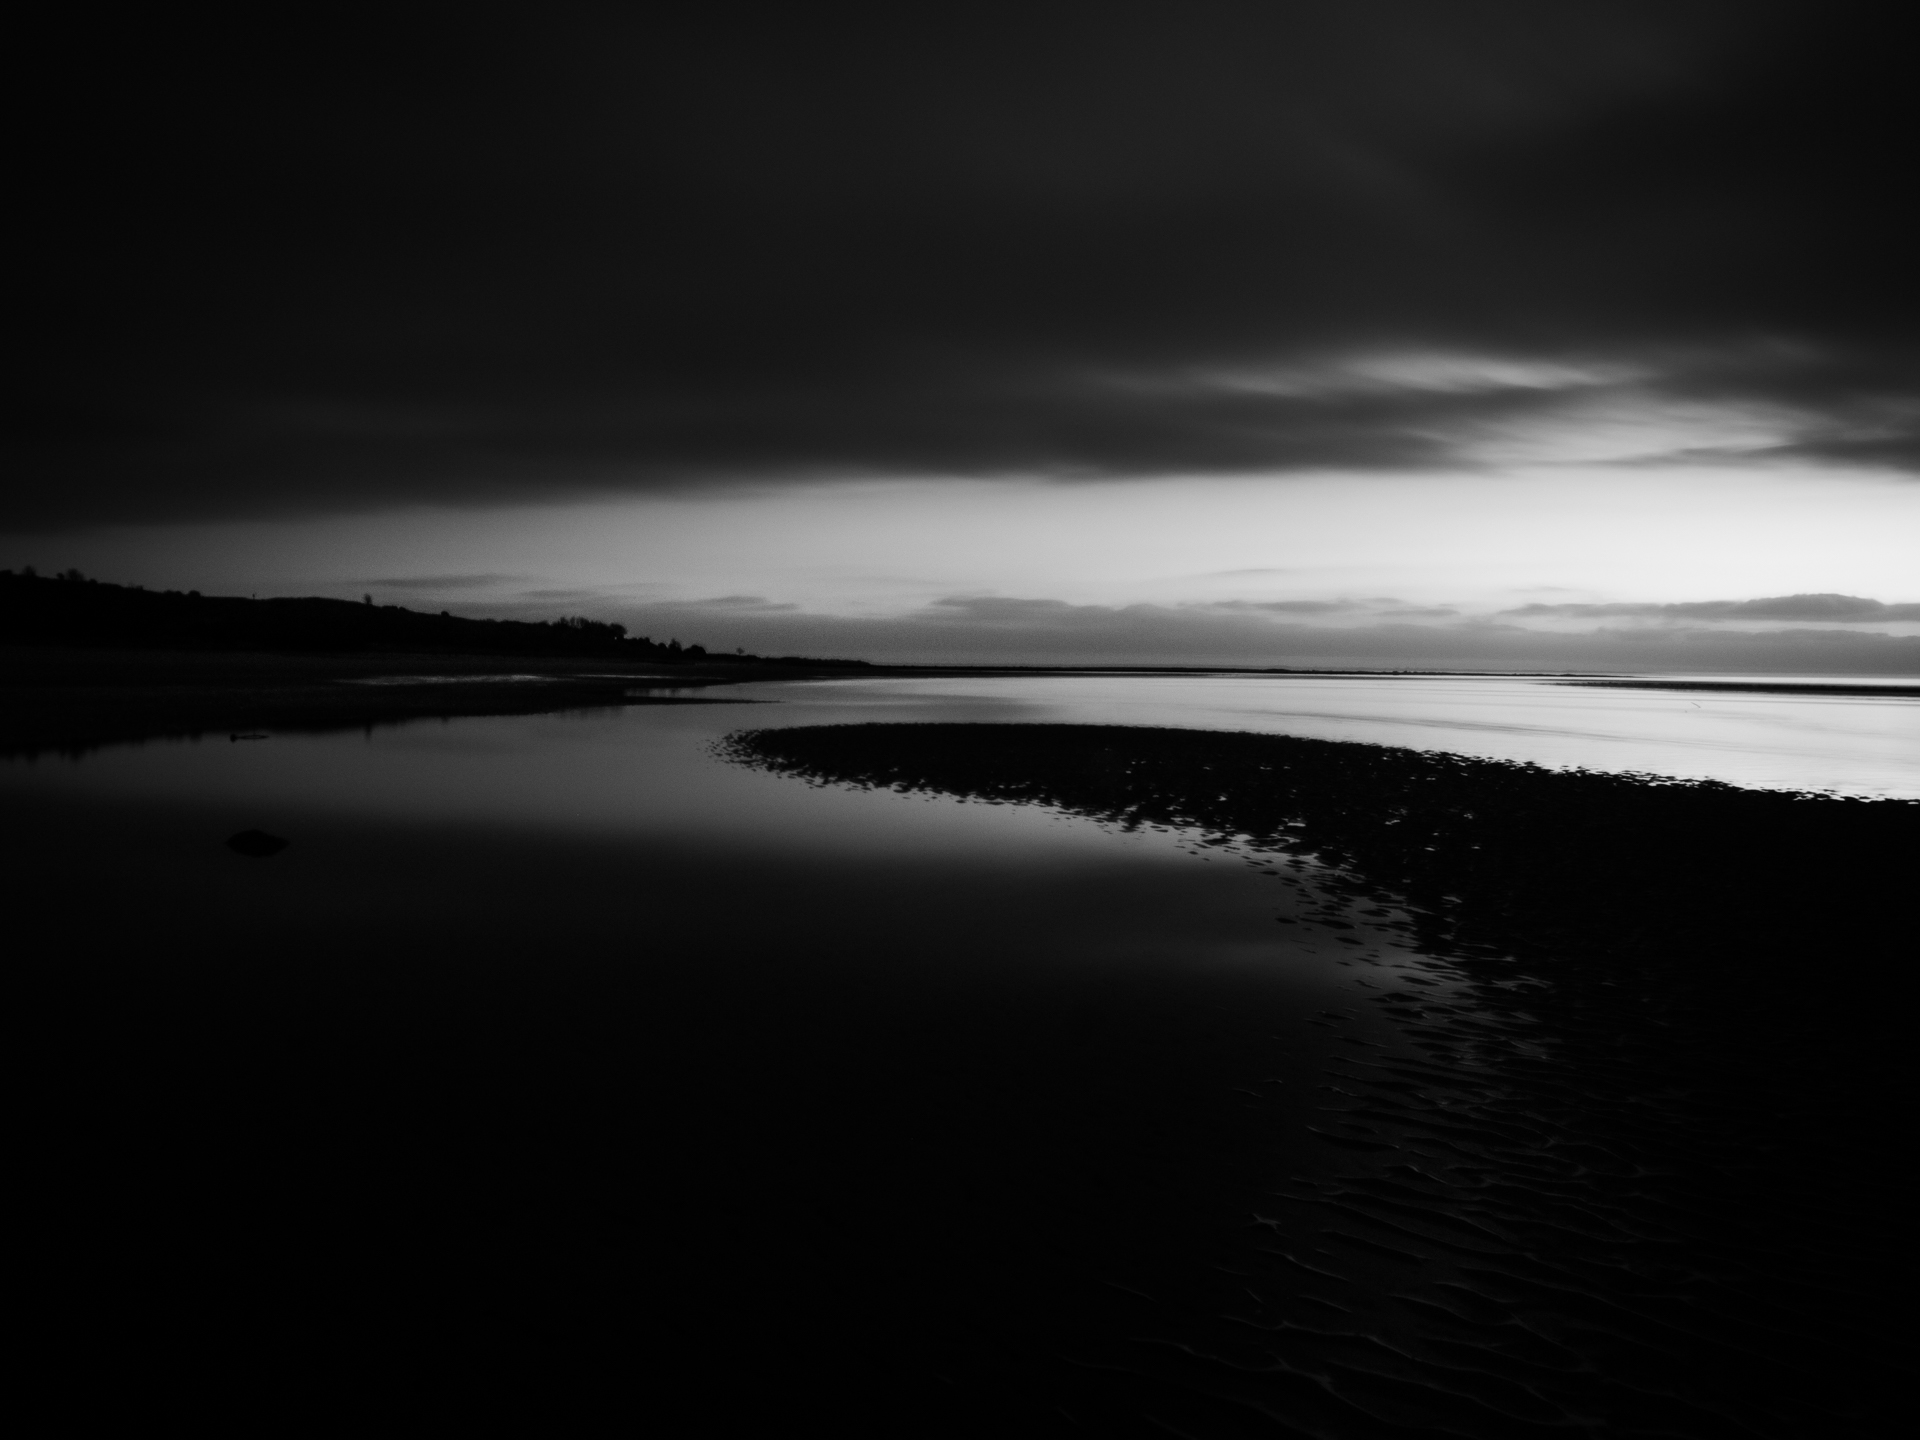 Dawn image of the beach in monochrome